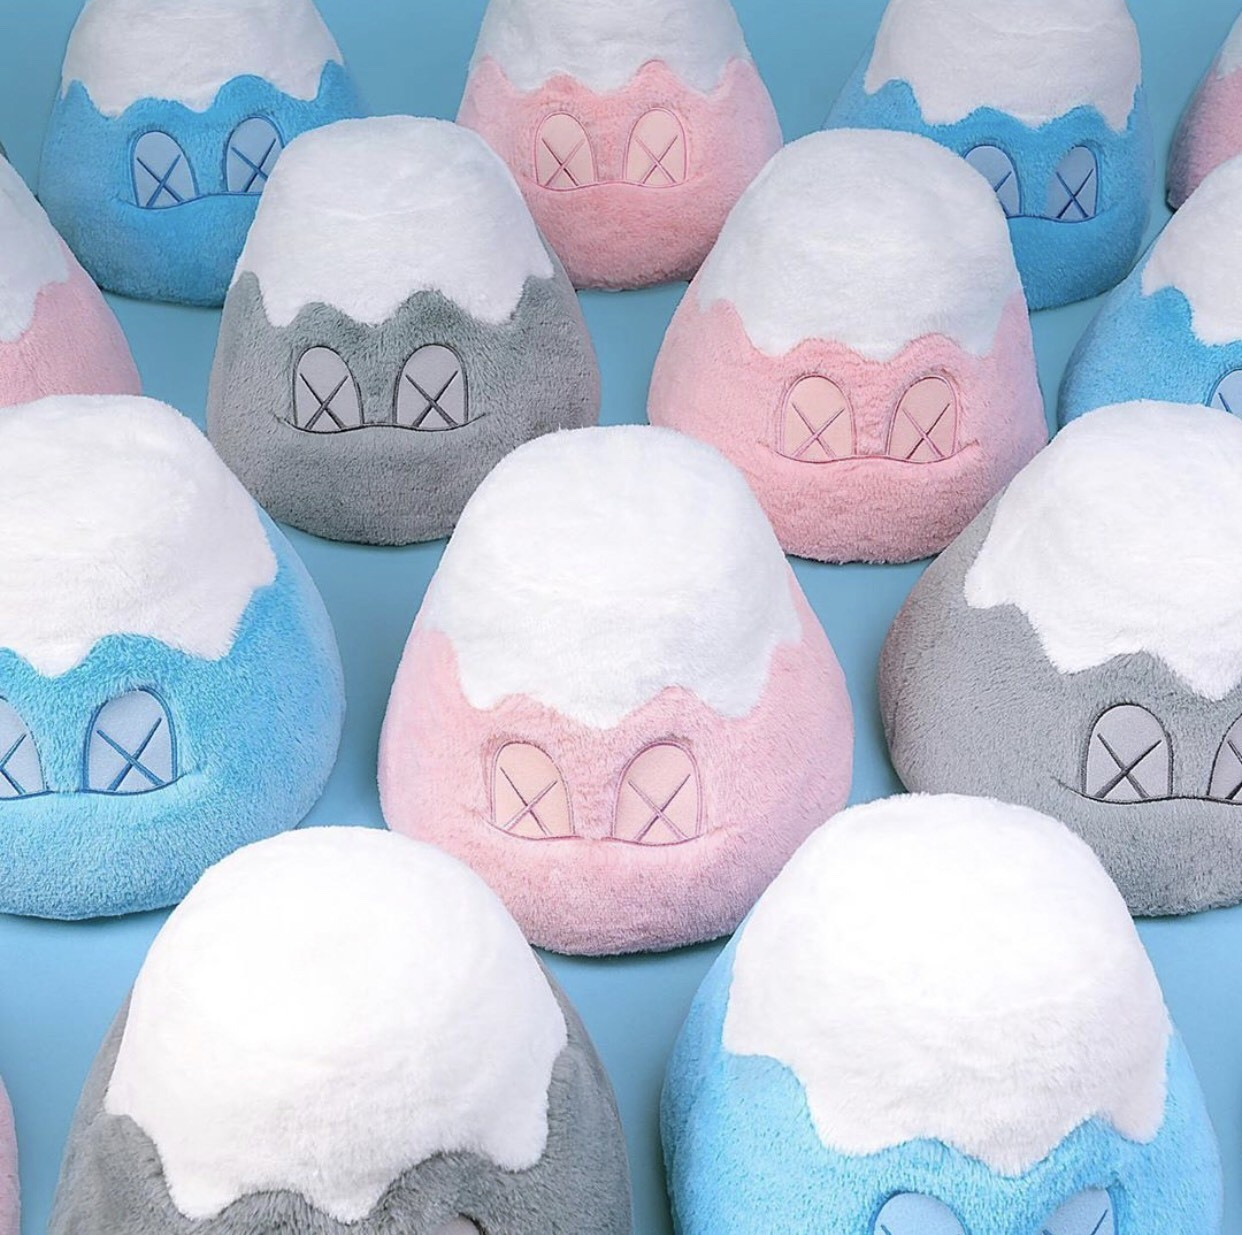 ▲Kaws:Holiday Japan。(圖/翻攝自IG@kaws、DING DONG宅配便、Kaws:Holiday Japan、Uniqlo)